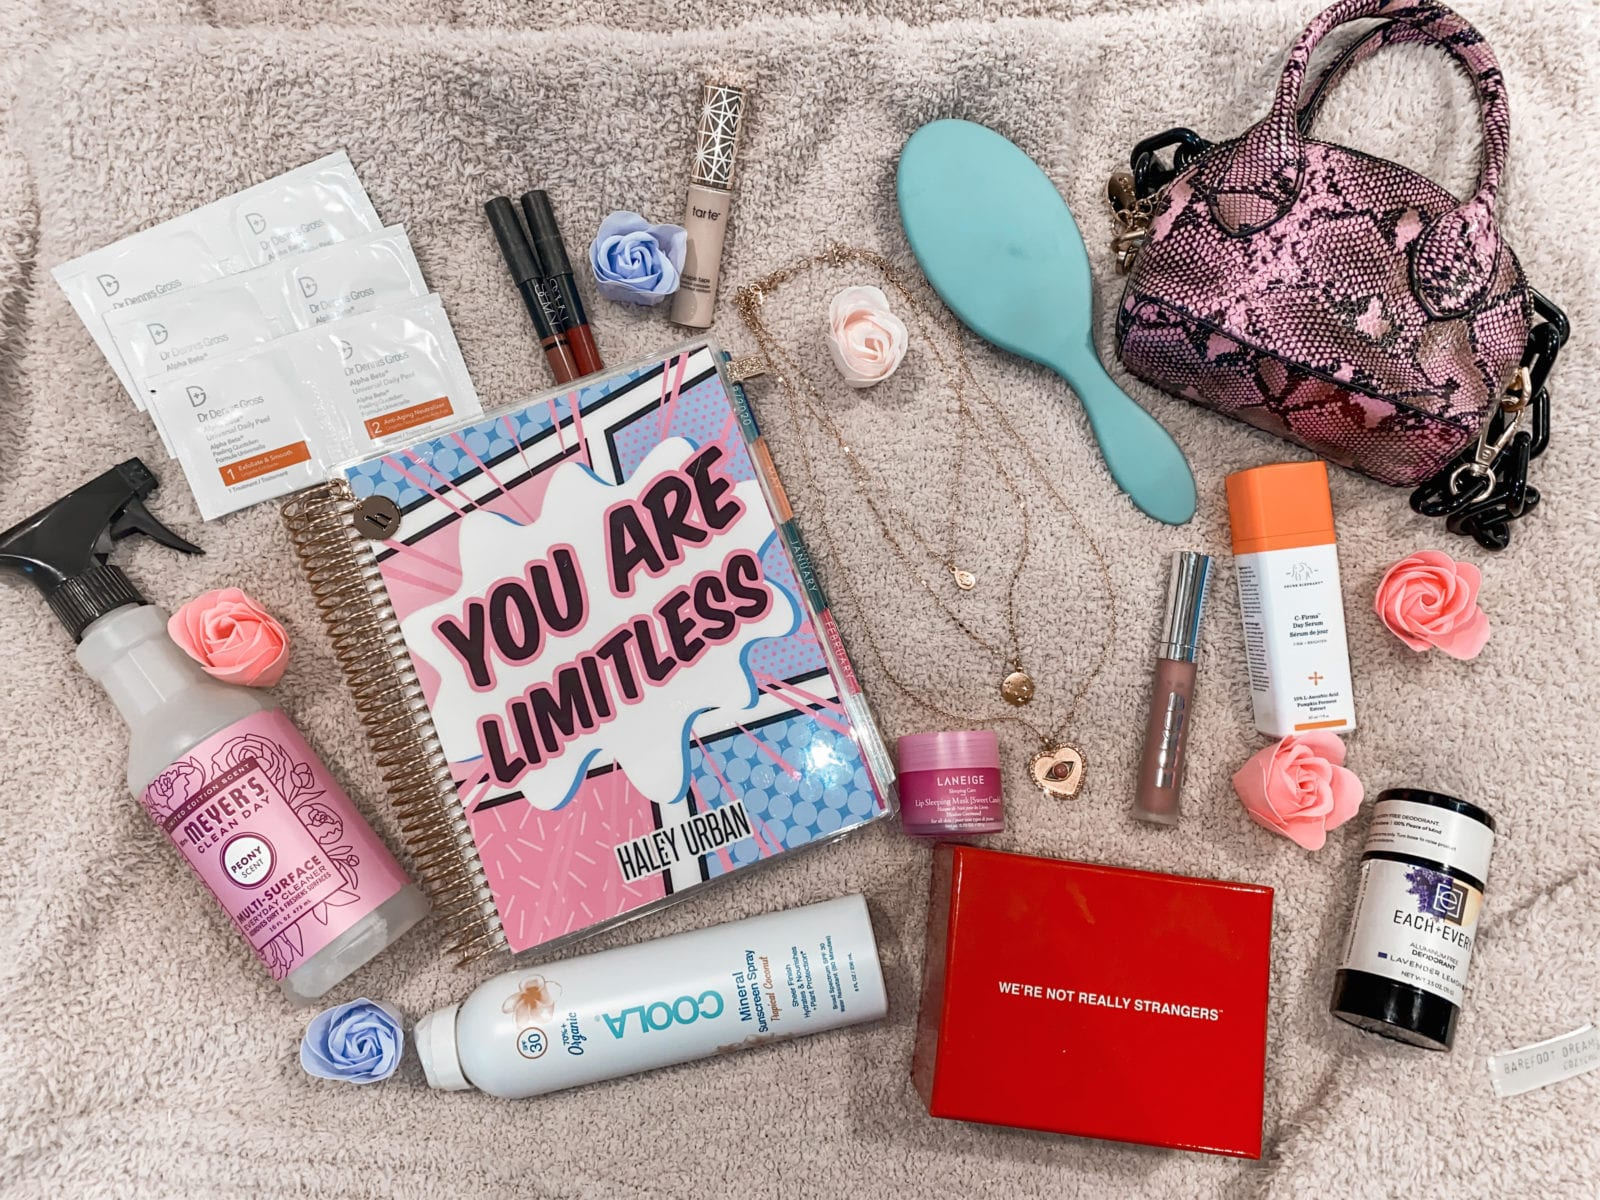 This image shows some of Haley and Adaleta's favorite things, in a flat lay. There's Coola mineral sunscreen spray, Mrs. Meyers Peony Multi-Surface cleaner, Drunk Elephant C-Firma, Each & Every Natural Deodorant, and a gorgeous pink snakeskin handbag, a wet hair brush, Dr. Dennis Gross Peel Pads, an Erin Condren planner and the WRNS game.